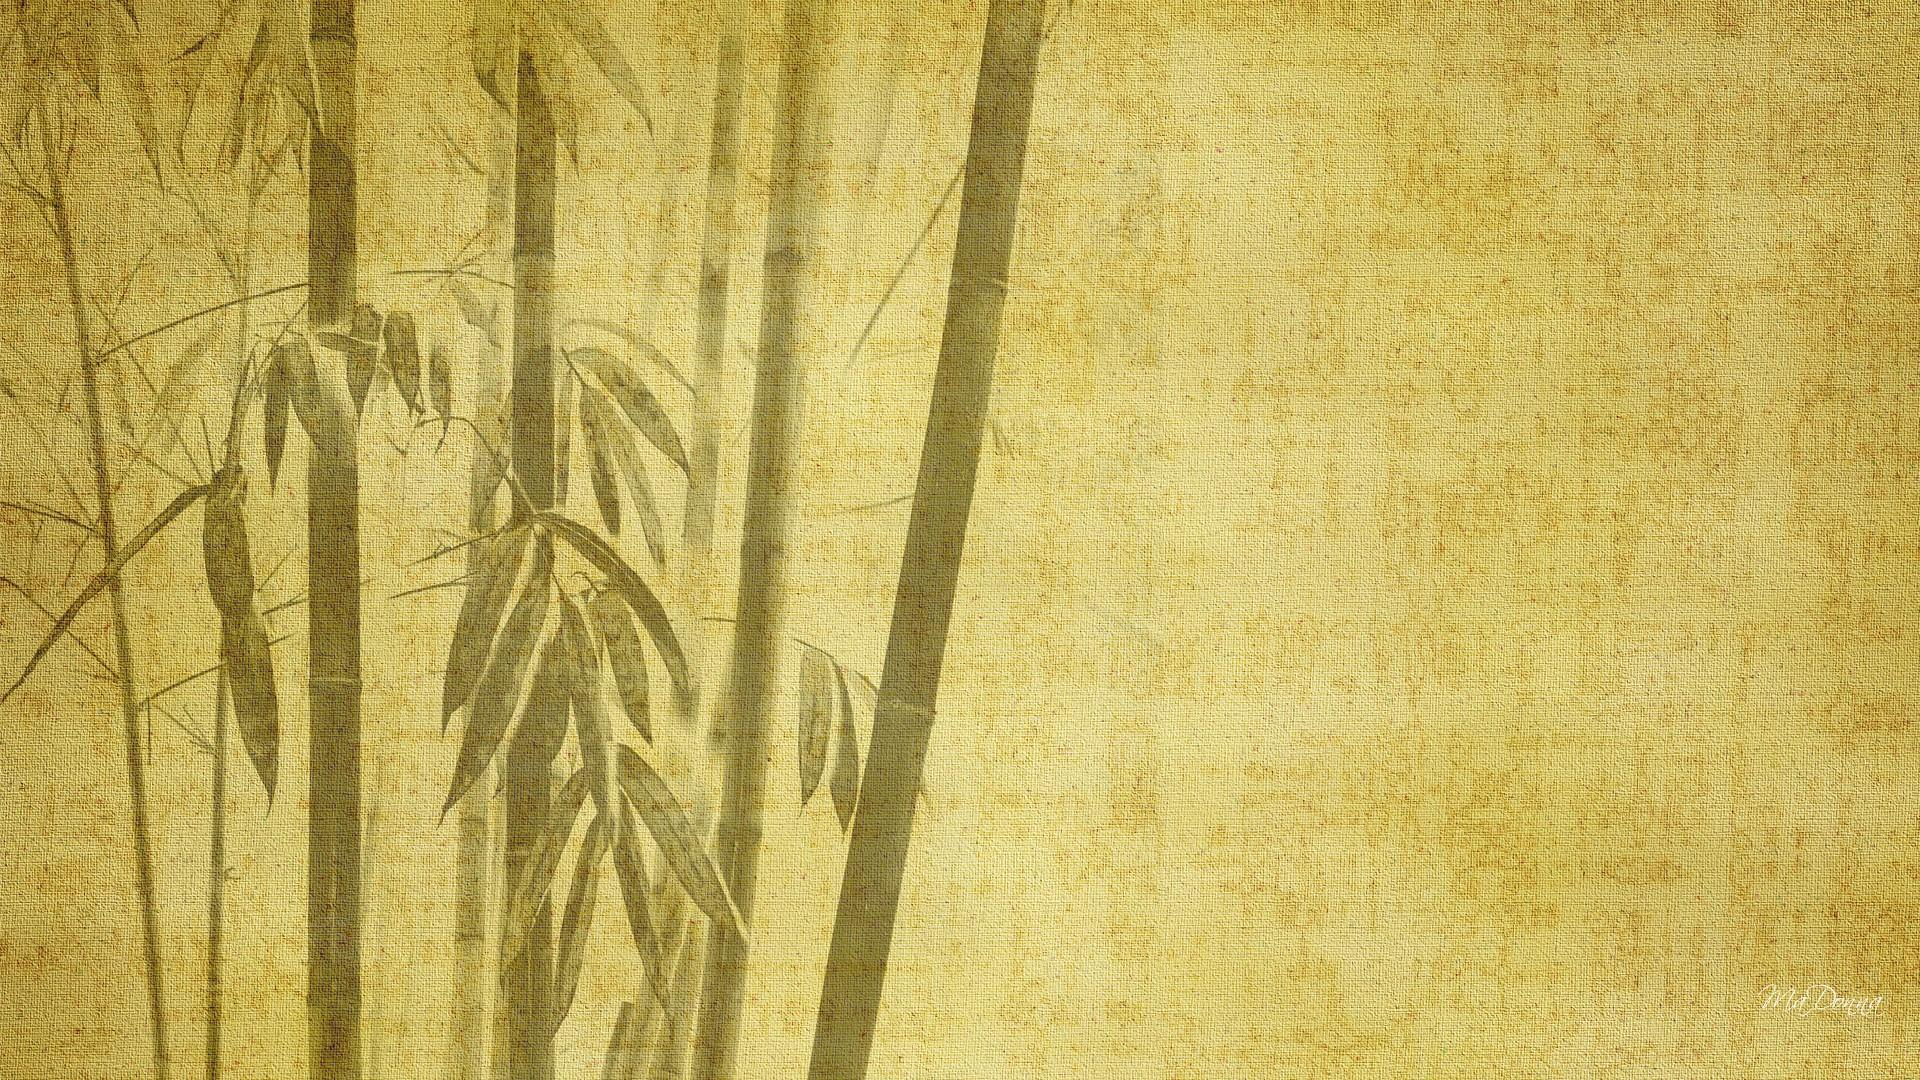 free-images-hd-bamboo-backgrounds | wallpaper.wiki